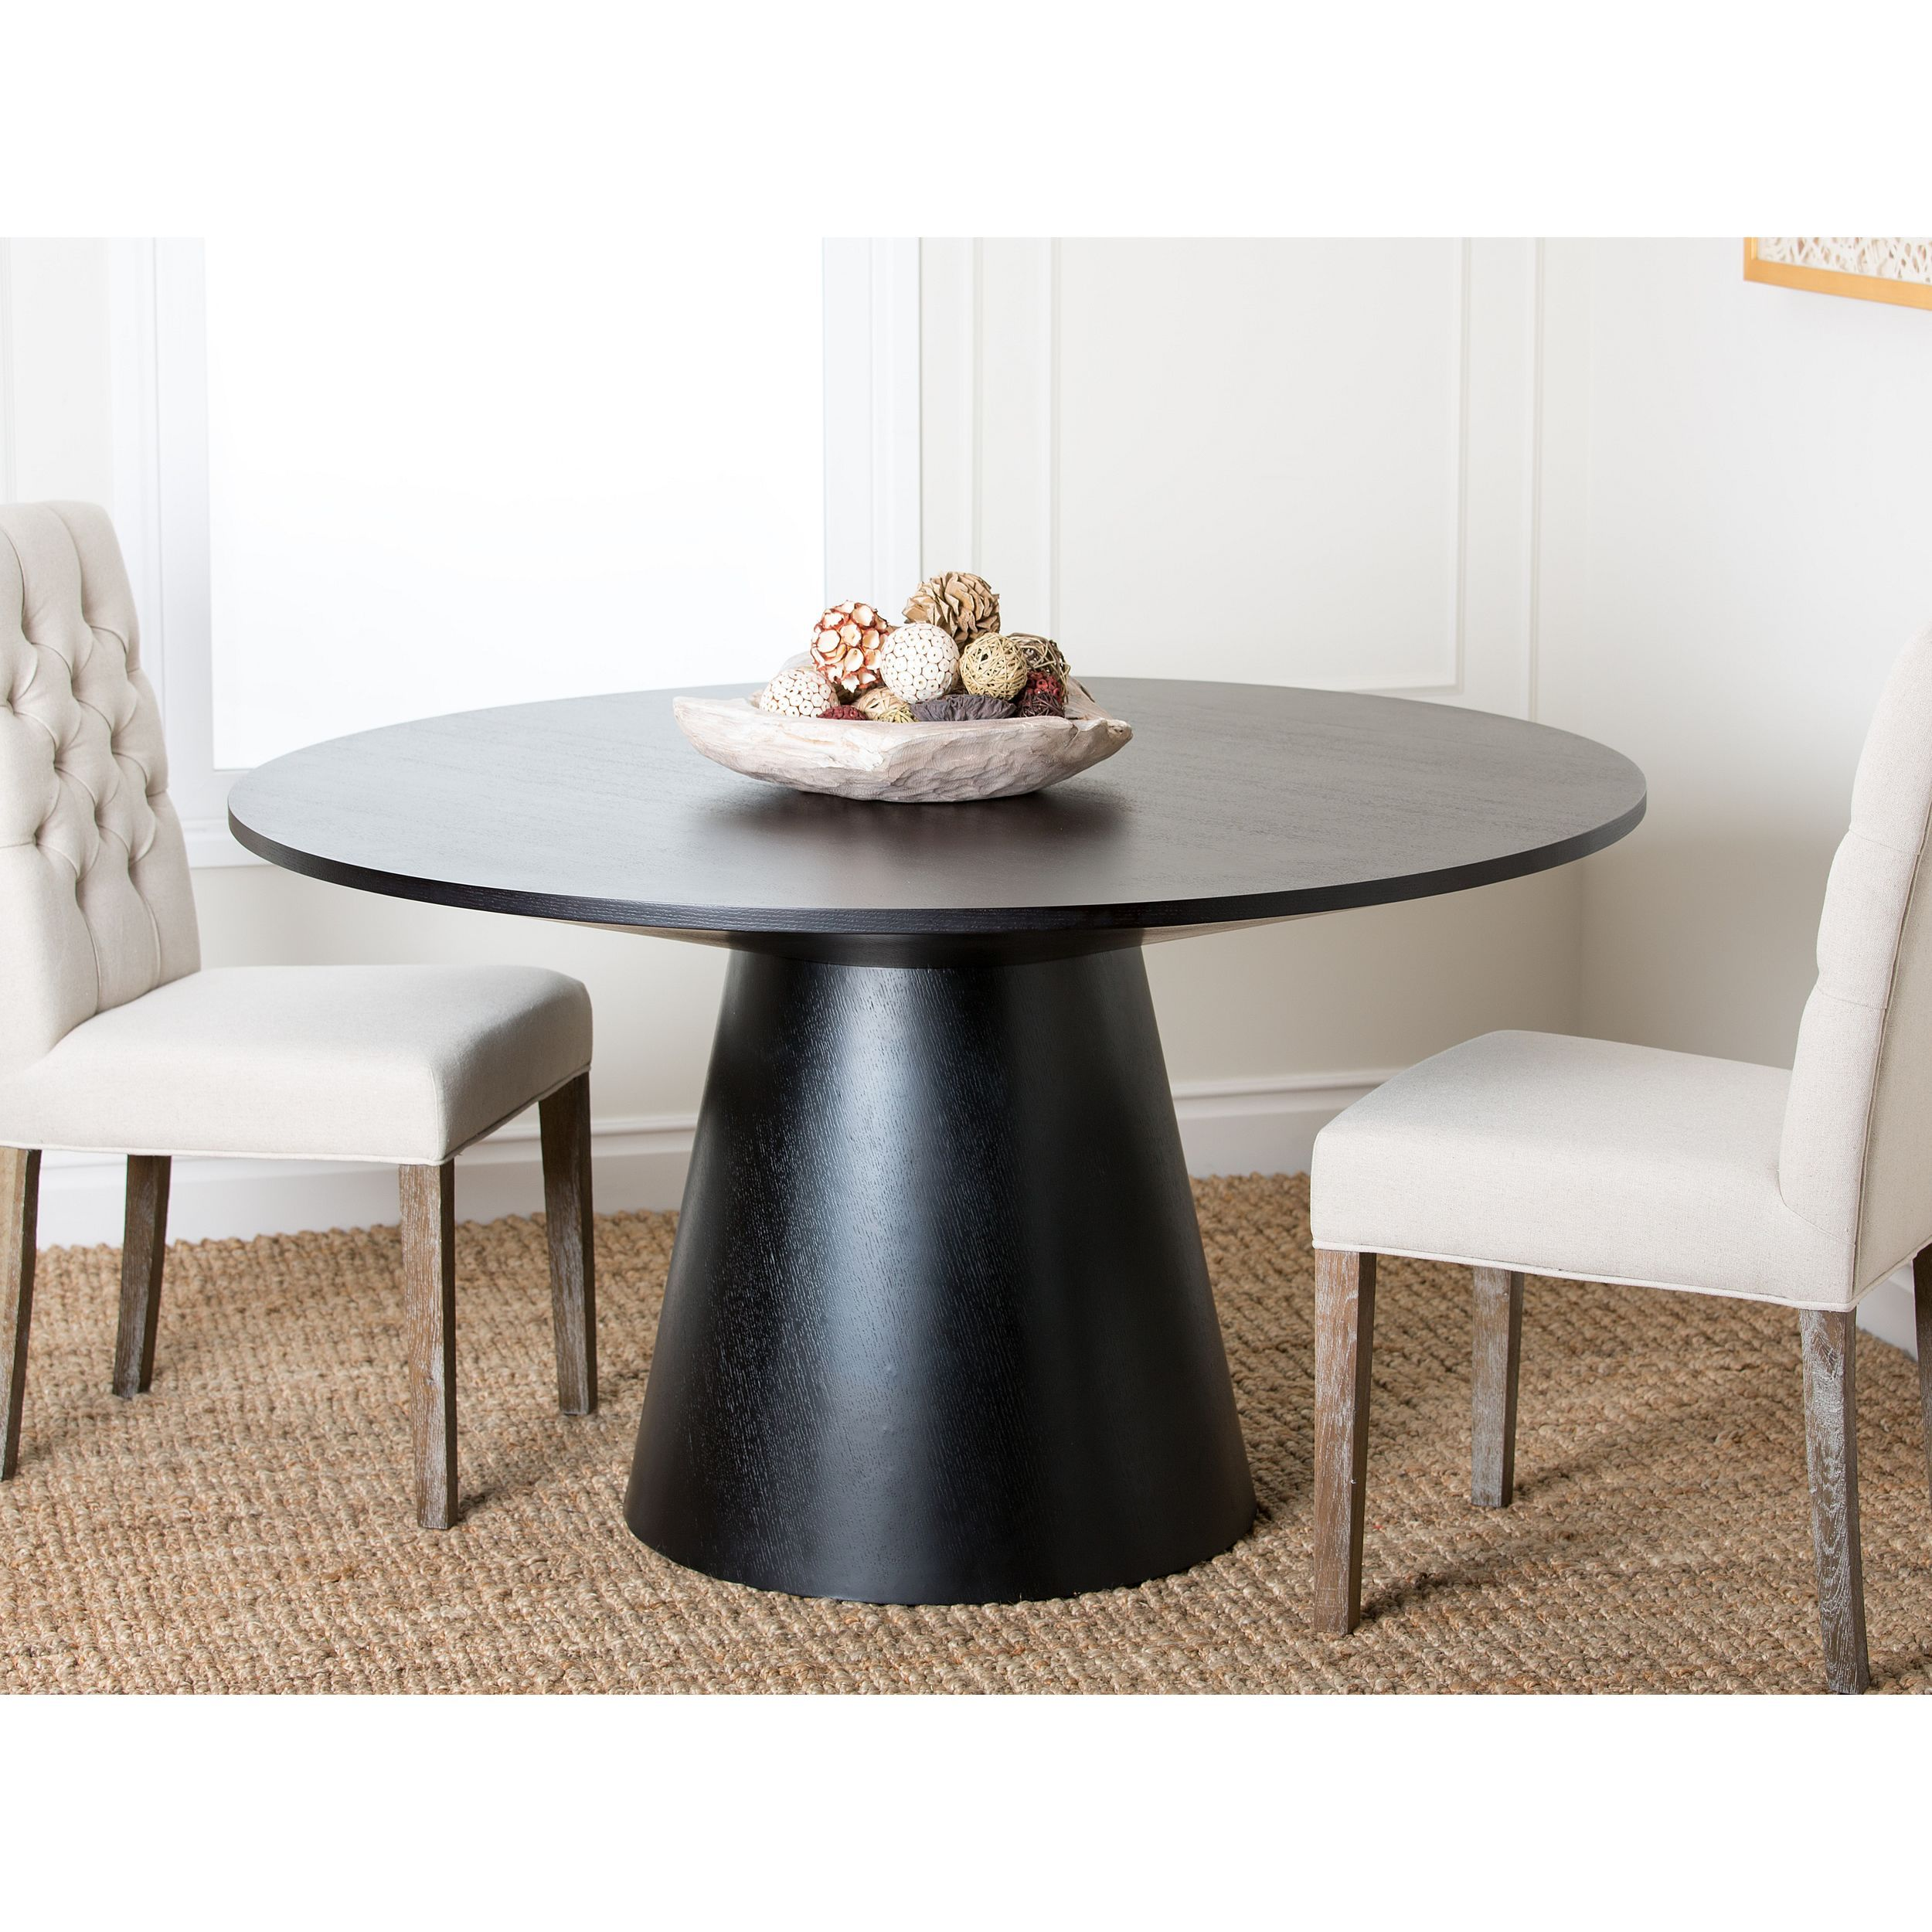 990 enjoy this round elegant dining table for years to e